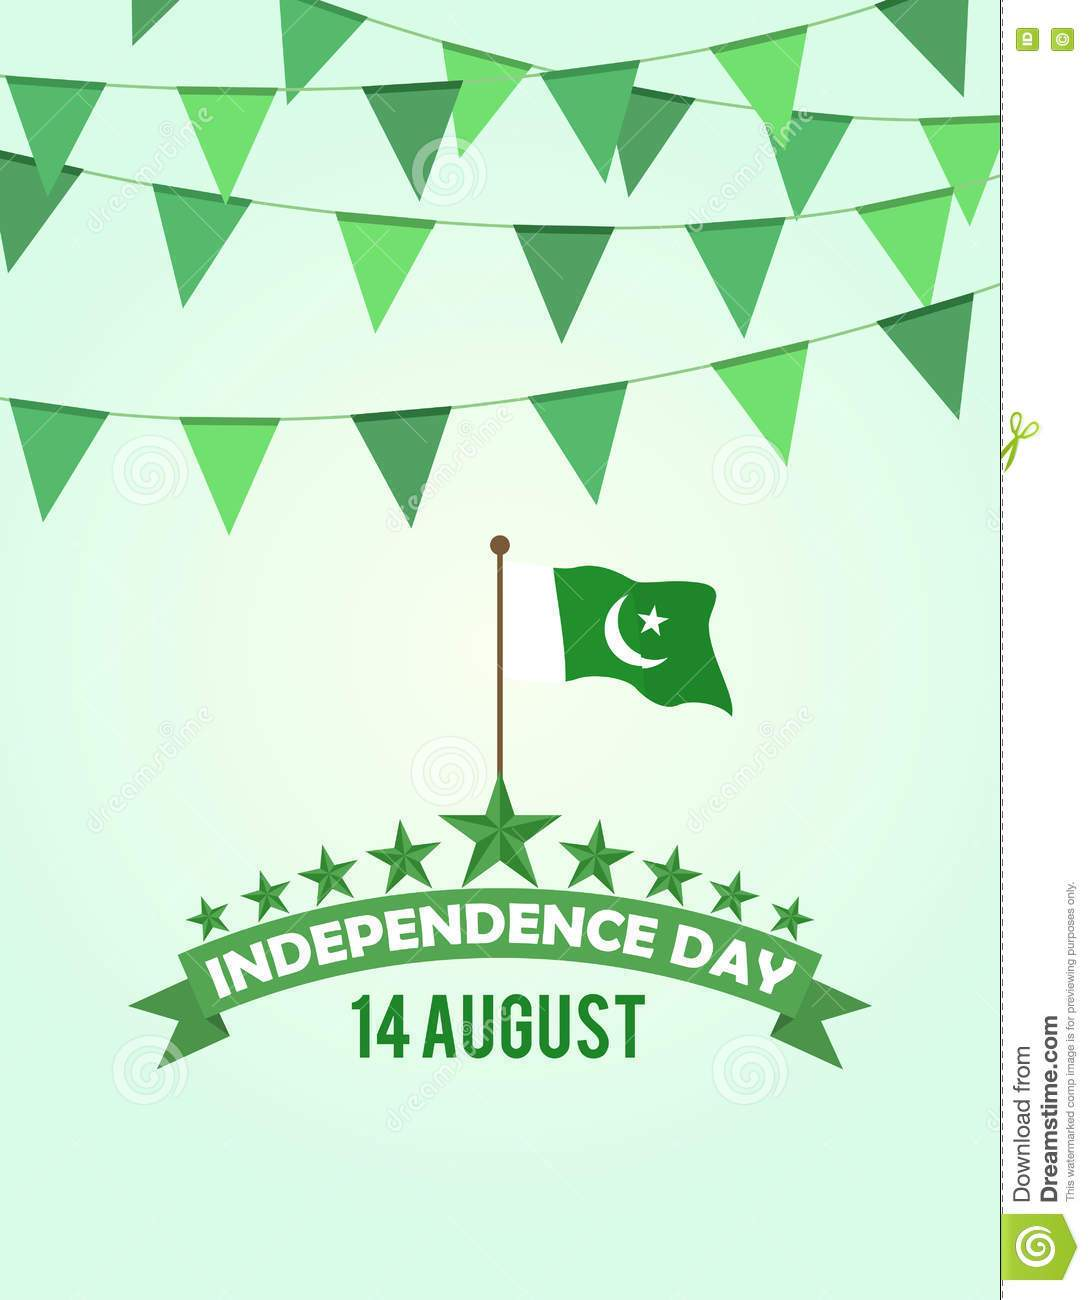 Pakistan independence day clipart vector royalty free stock Pakistan independence day clipart » Clipart Portal vector royalty free stock